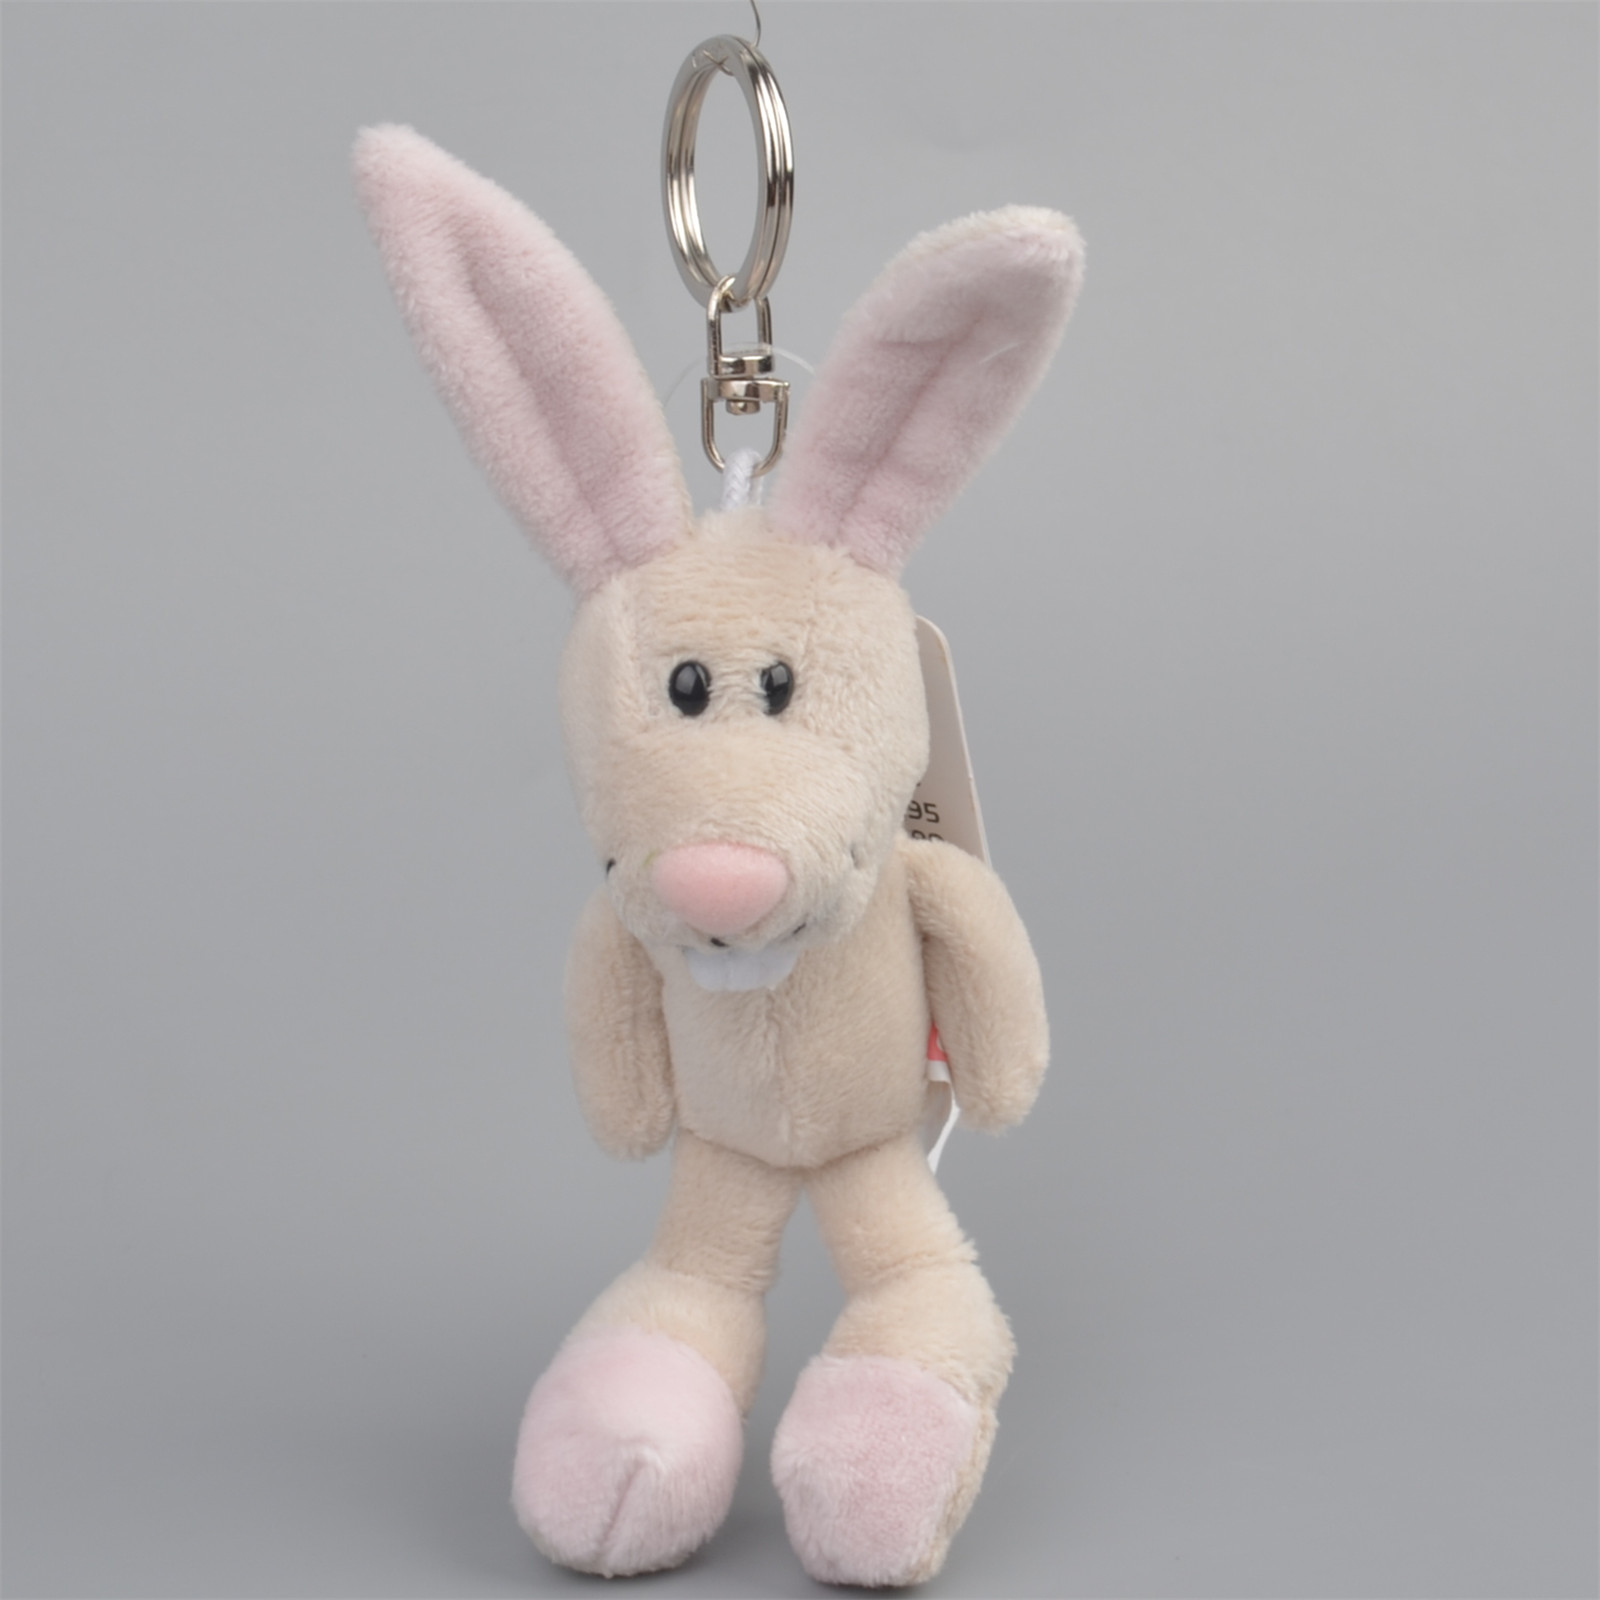 5 Pcs Plush Toys Small Rabbit Plush Stuffed Dress Rabbit Key chain TOY, Kid's Party Plush TOY , Bouquet Plush Dolls